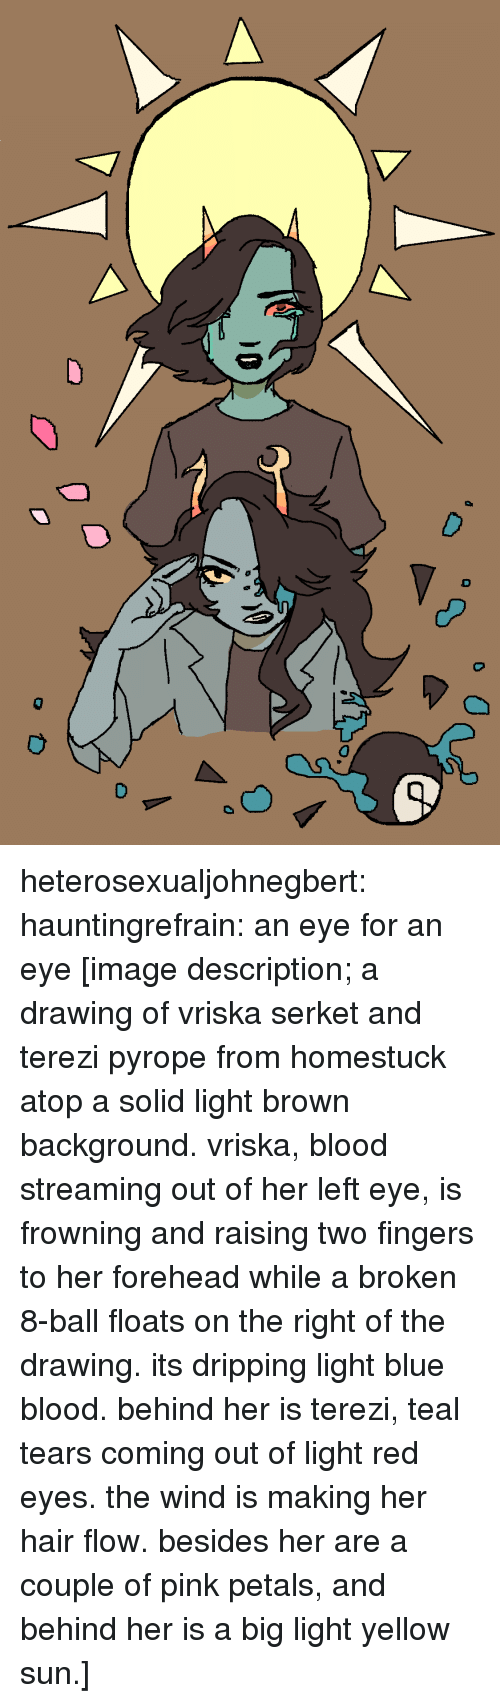 blue blood: heterosexualjohnegbert:  hauntingrefrain: an eye for an eye [image description; a drawing of vriska serket and terezi pyrope from homestuck atop a solid light brown background. vriska, blood streaming out of her left eye, is frowning and raising two fingers to her forehead while a broken 8-ball floats on the right of the drawing. its dripping light blue blood. behind her is terezi, teal tears coming out of light red eyes. the wind is making her hair flow. besides her are a couple of pink petals, and behind her is a big light yellow sun.]